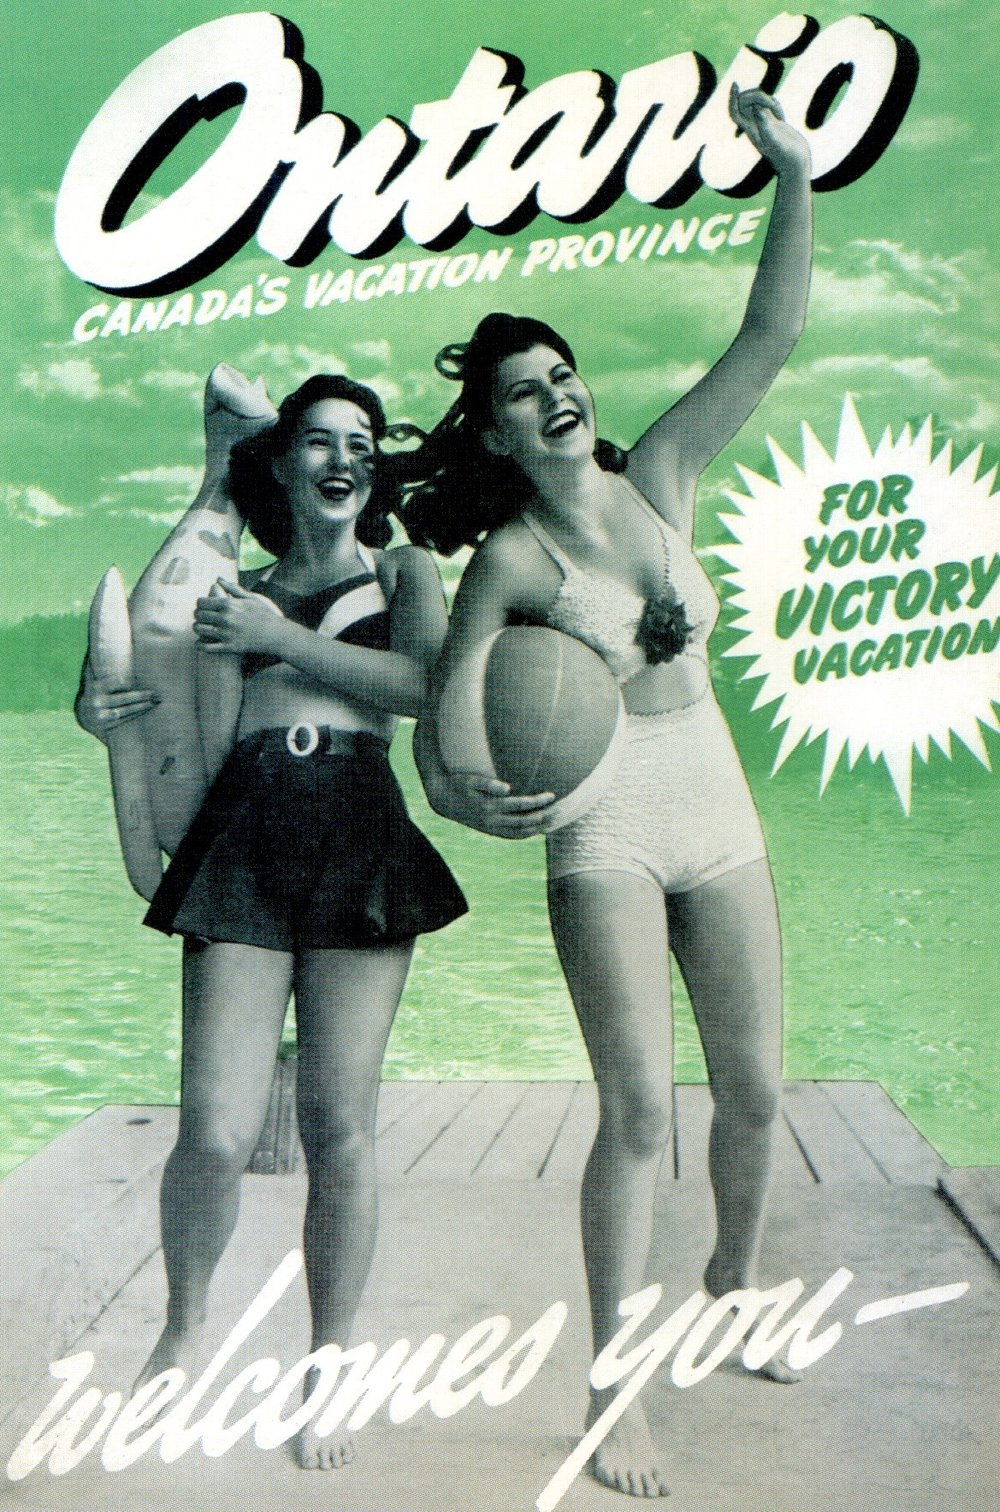 Ontario tourism booklet promoting post-war vacation in 1946. Publisher: CJ Gendron Collection